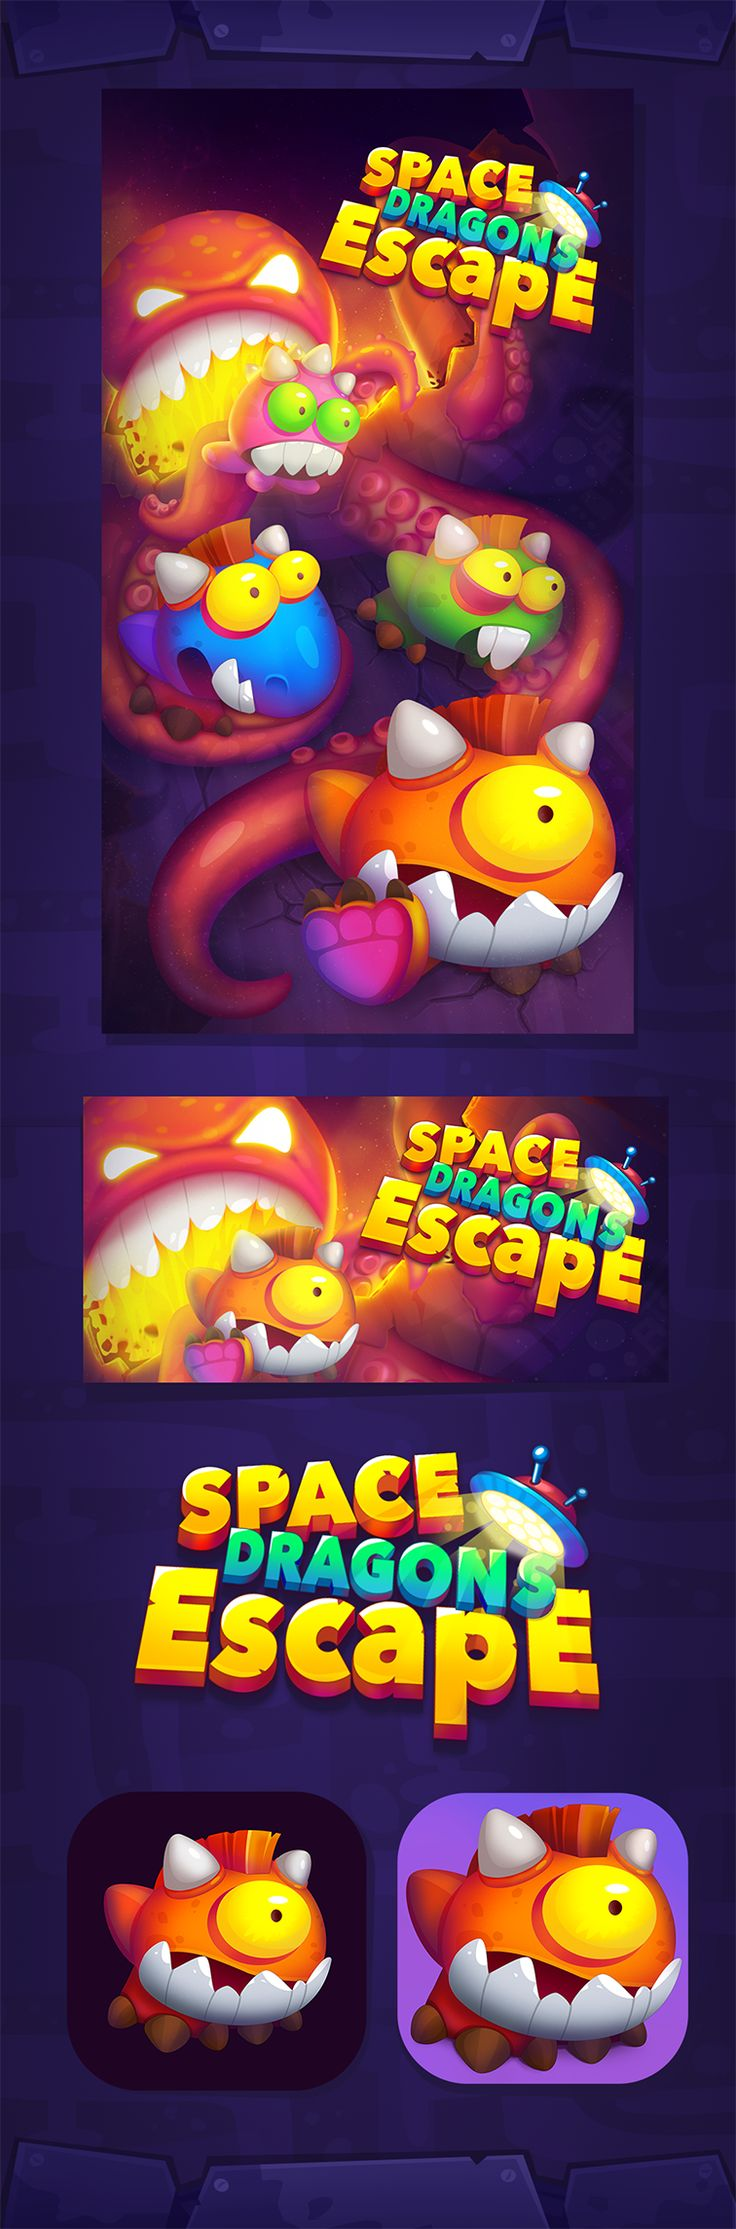 Space Dragons Escape on Behance